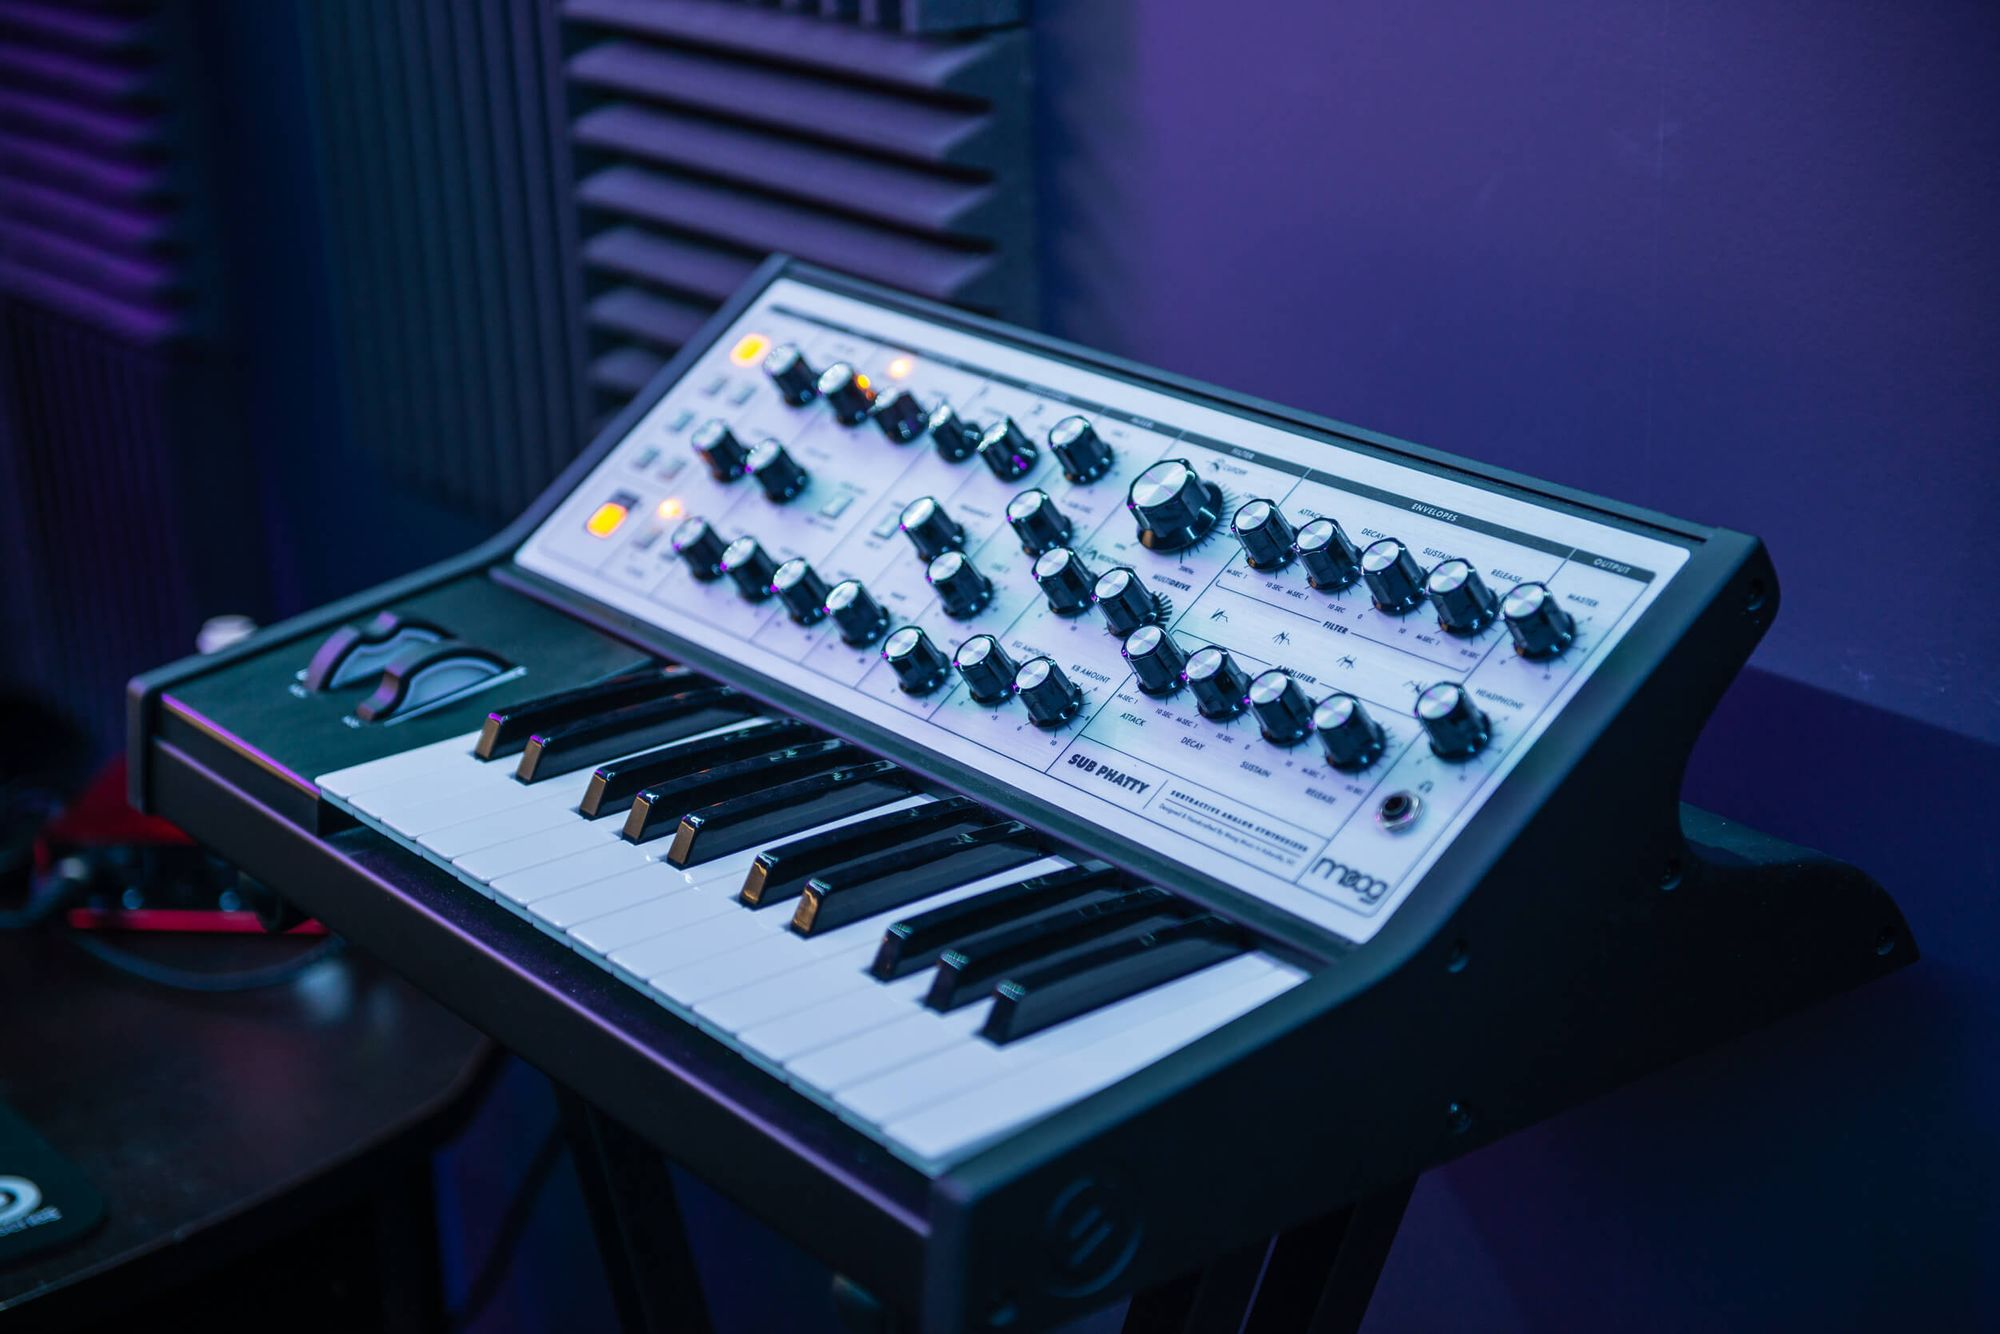 Moog Sub Phatty is a portable analogue synth featuring rich, vintage sound